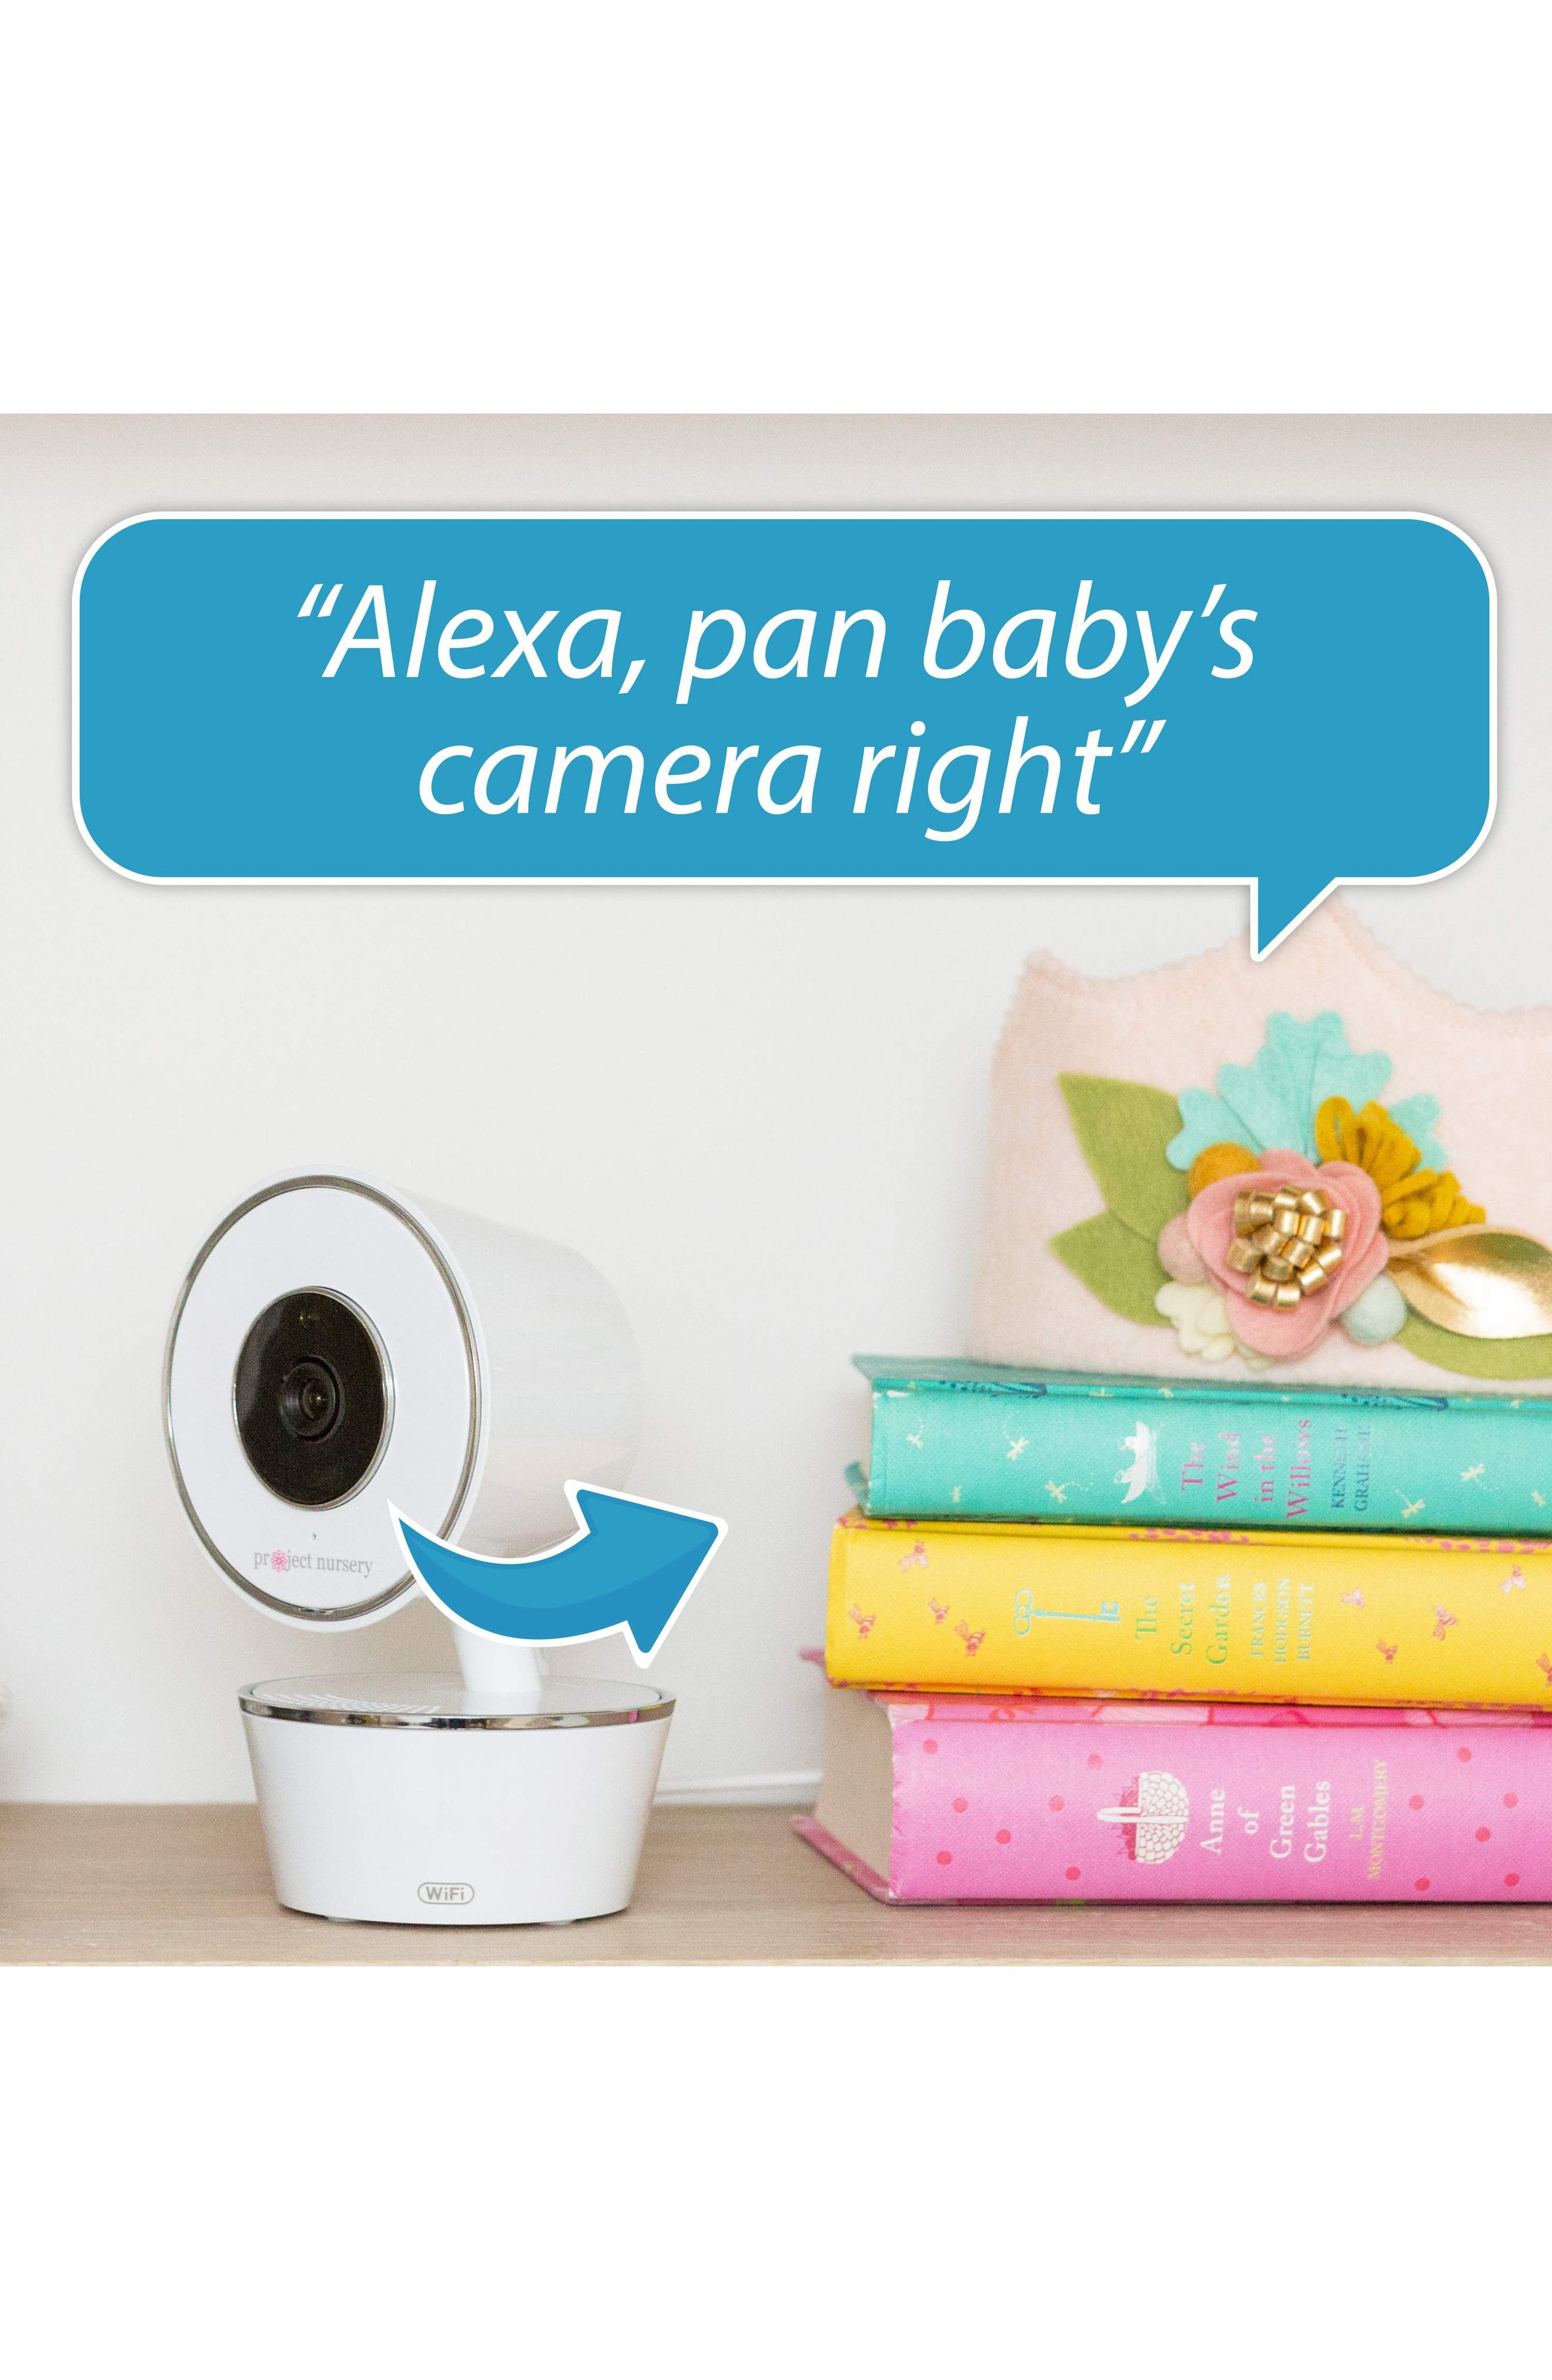 Smart Nursery Wi-Fi Baby Monitor,                             Alternate thumbnail 8, color,                             WHITE